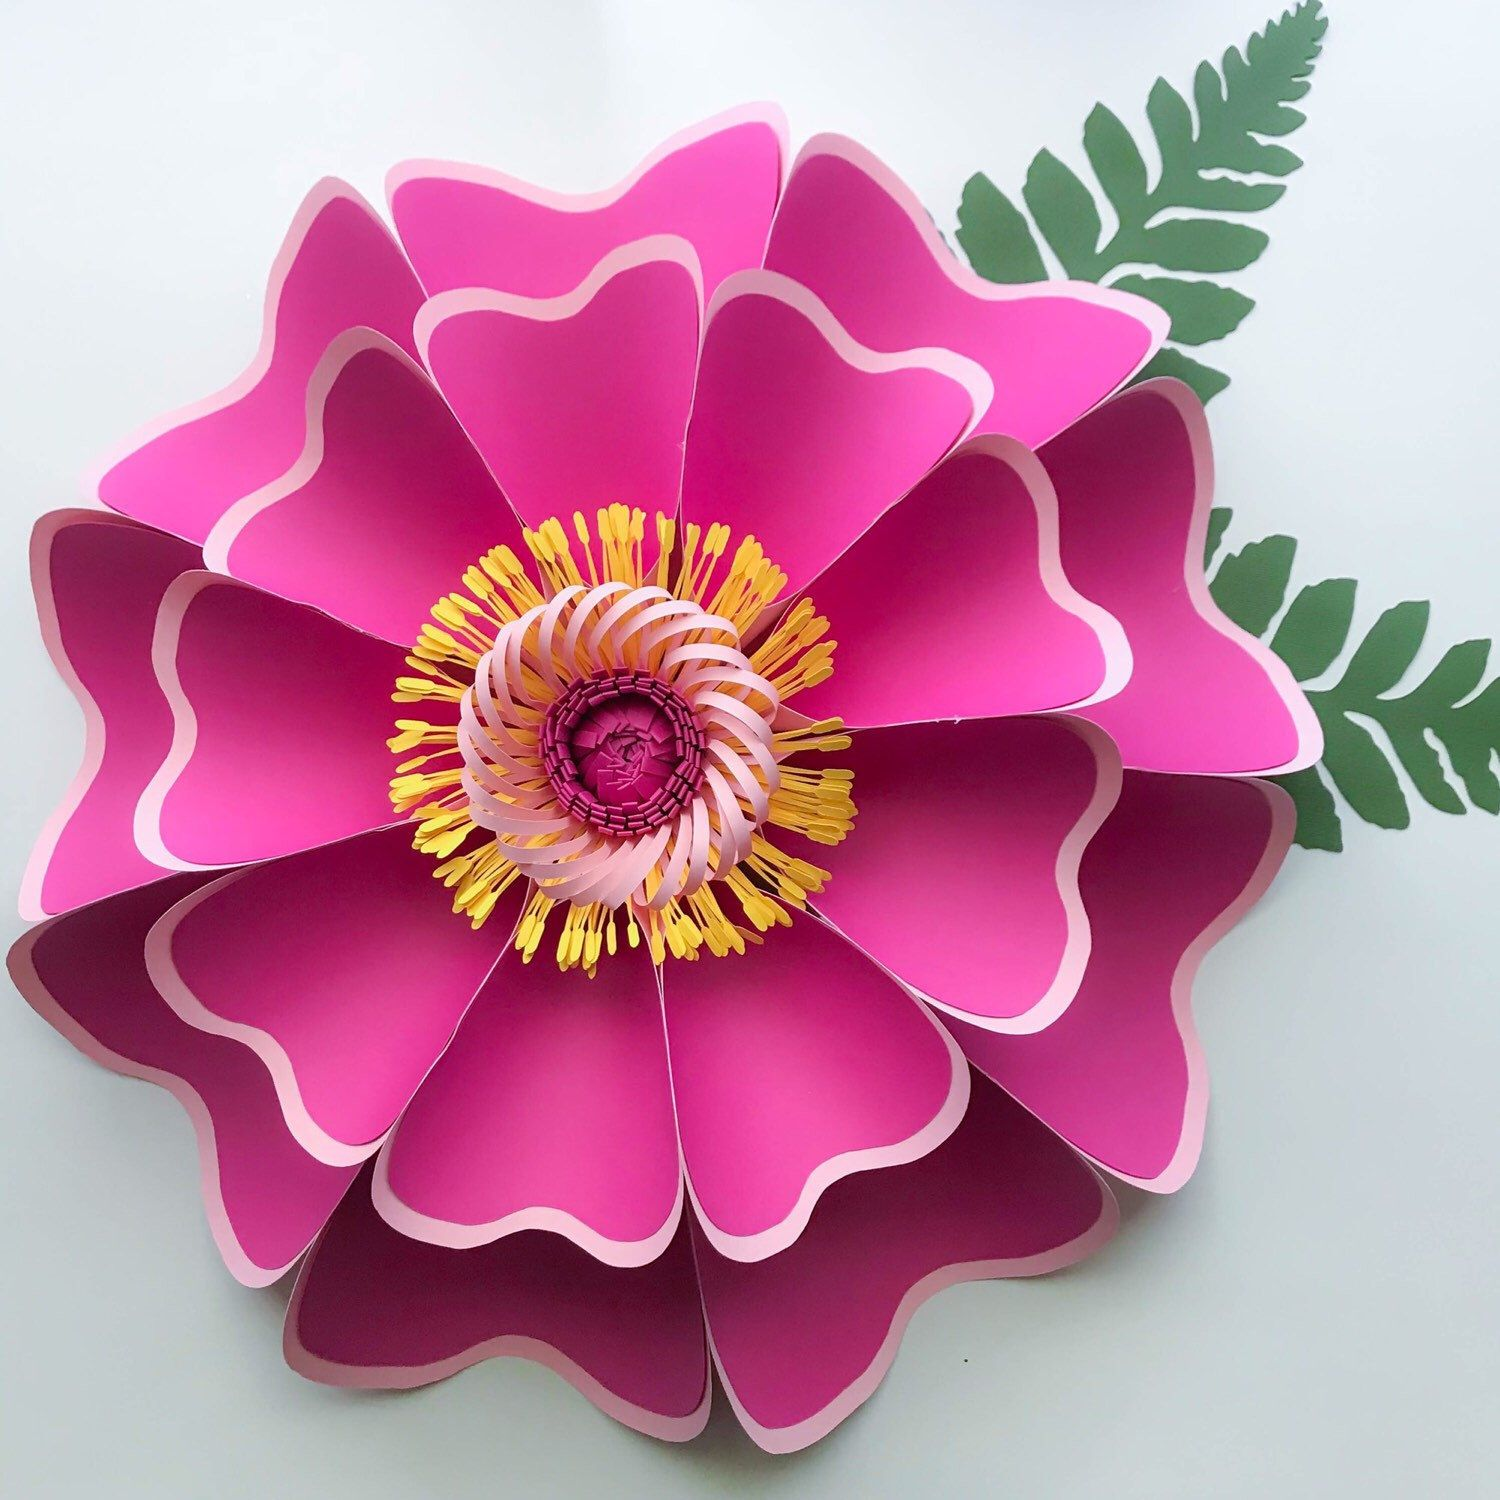 Heres An Extra Ordinary Approach Of An Ordinary Paper Flower